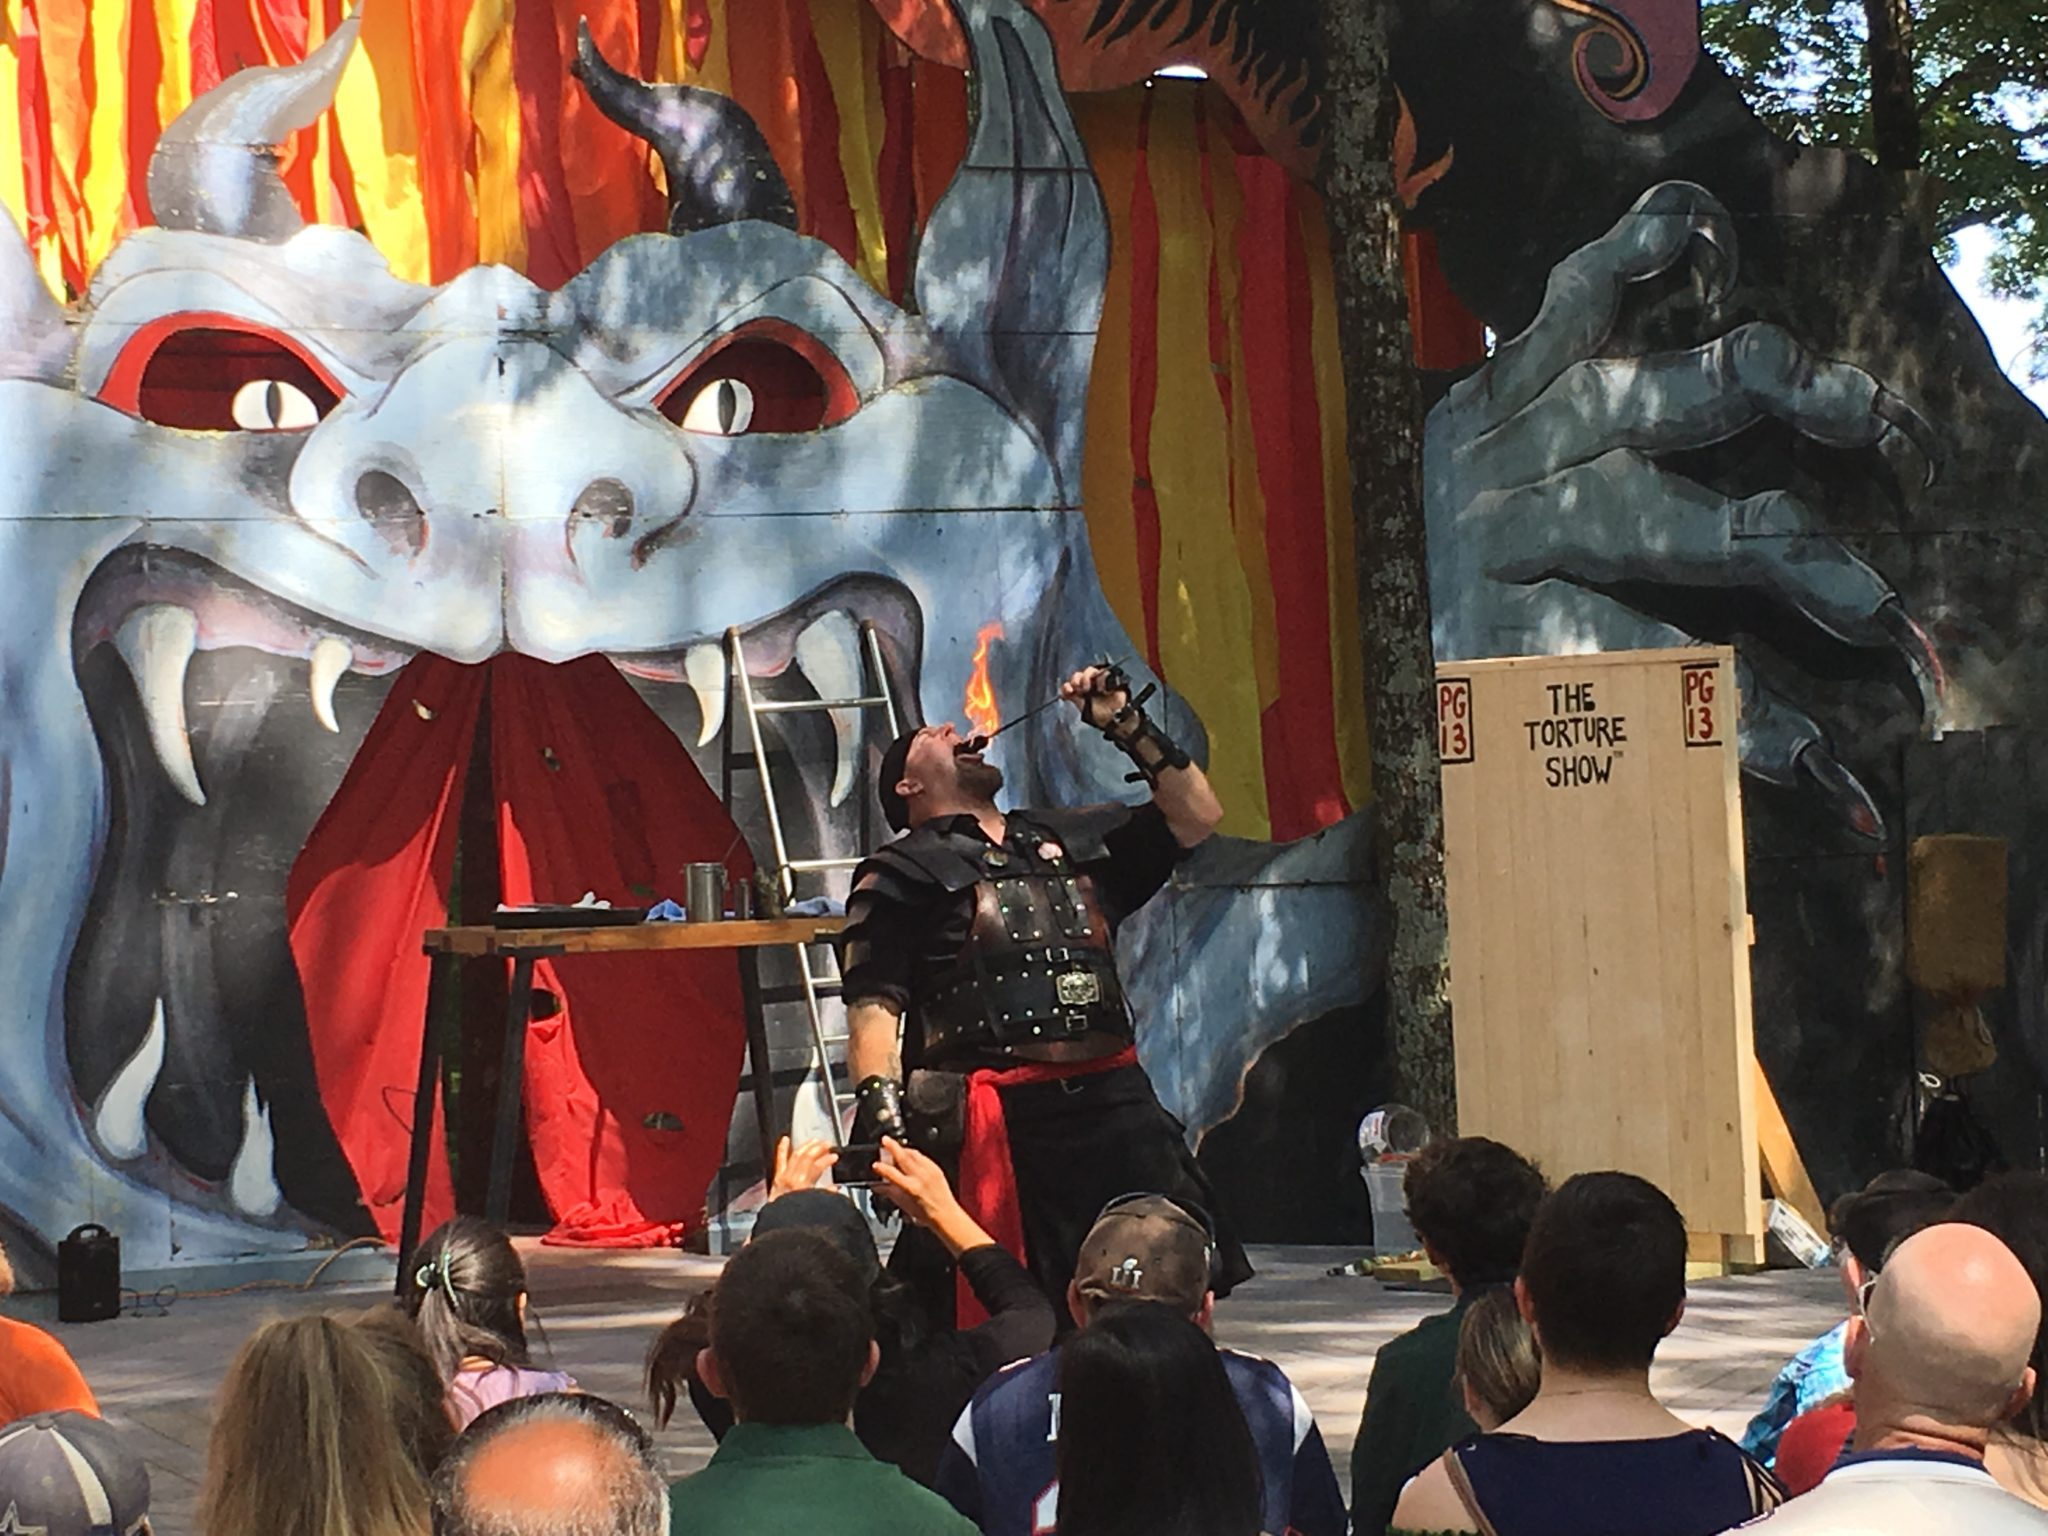 The Torture Show at King Richard's Faire!